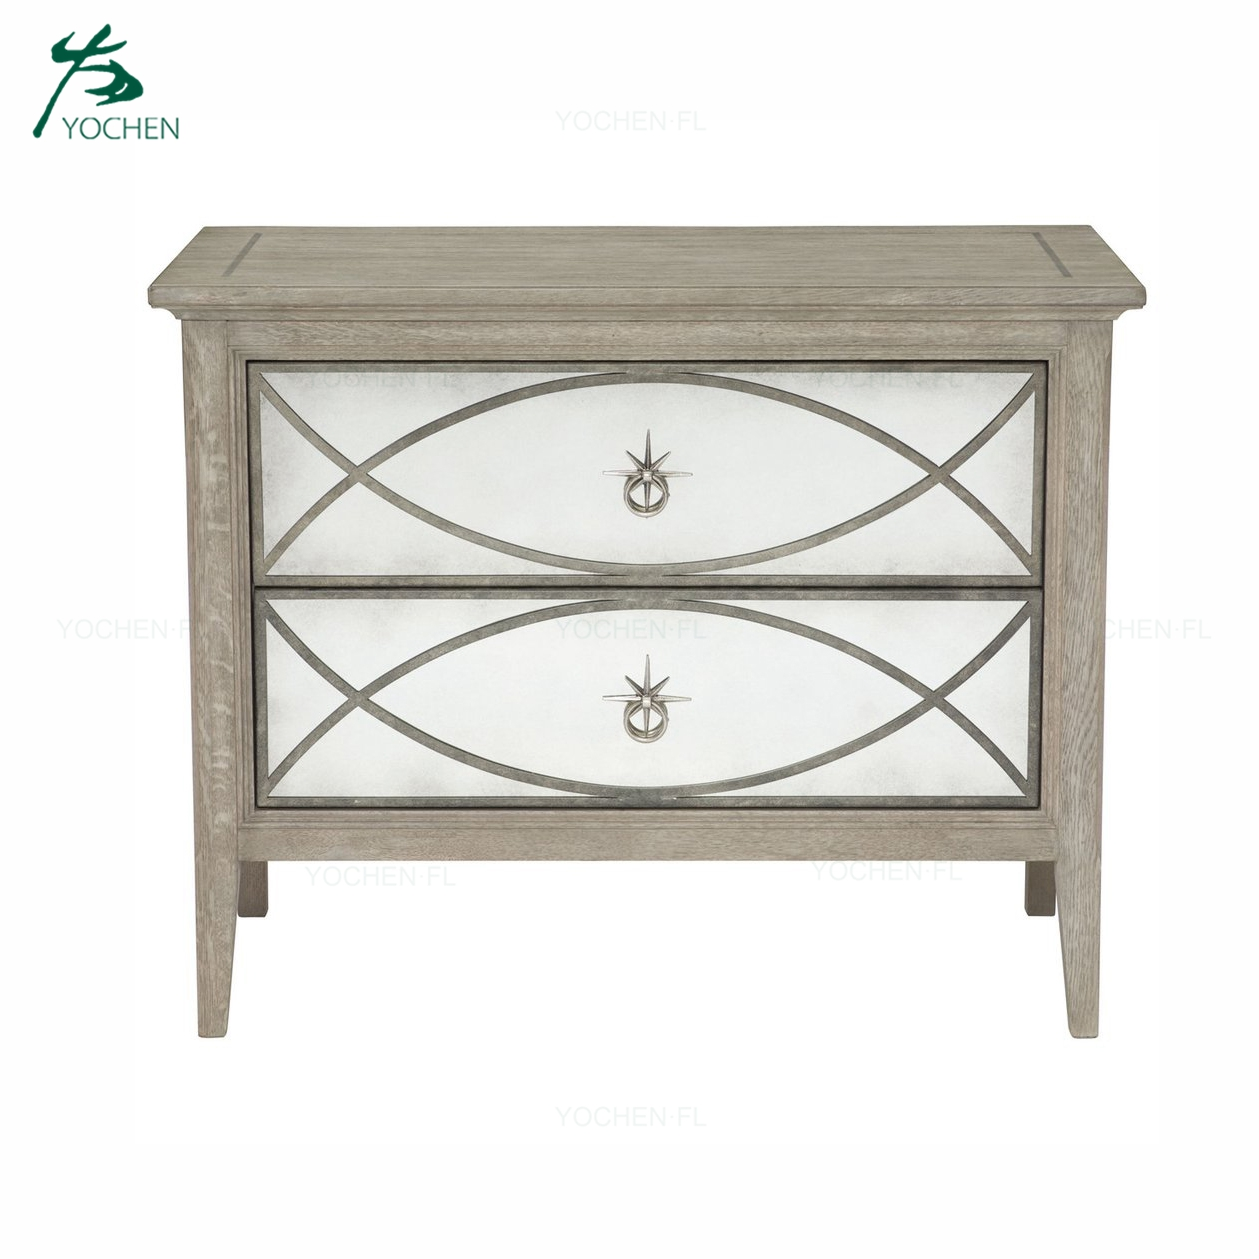 natural wood carving storage mirror side table living room furniture